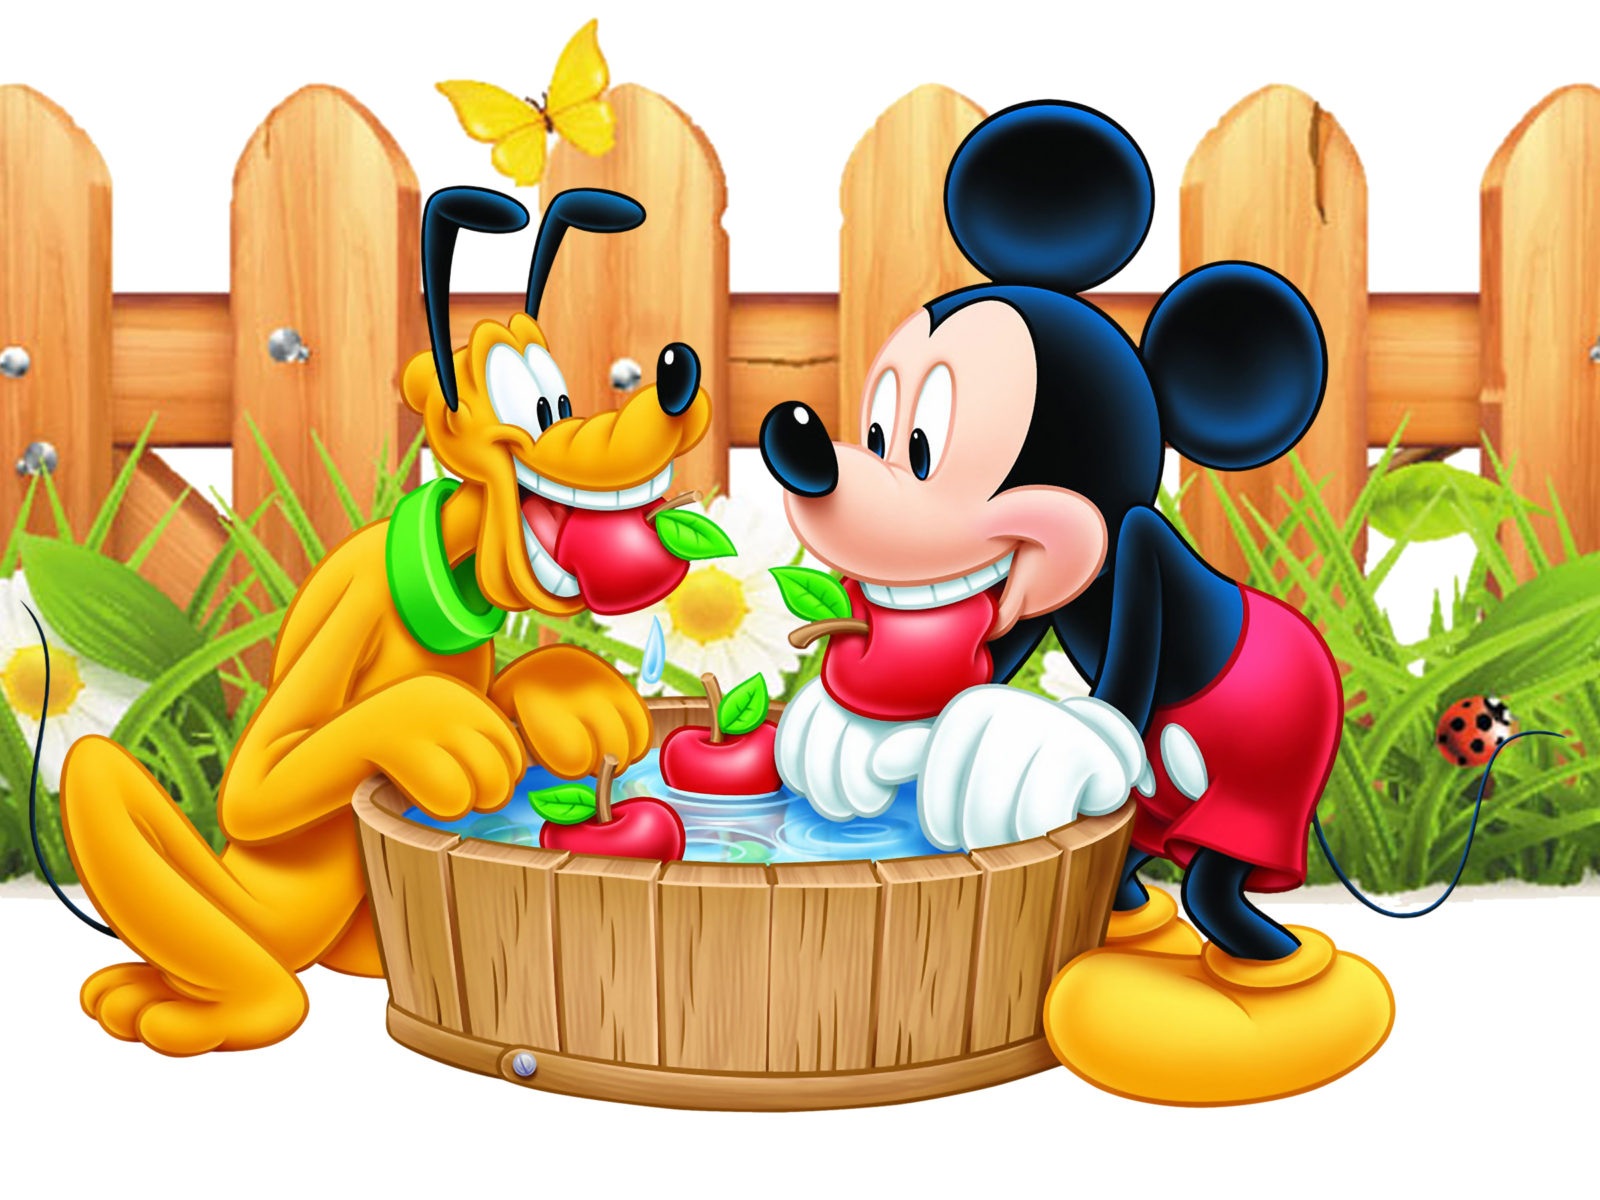 mickey mouse and pluto apple red wooden fence desktop wallpaper hd 2880x1800 wallpapers13 com